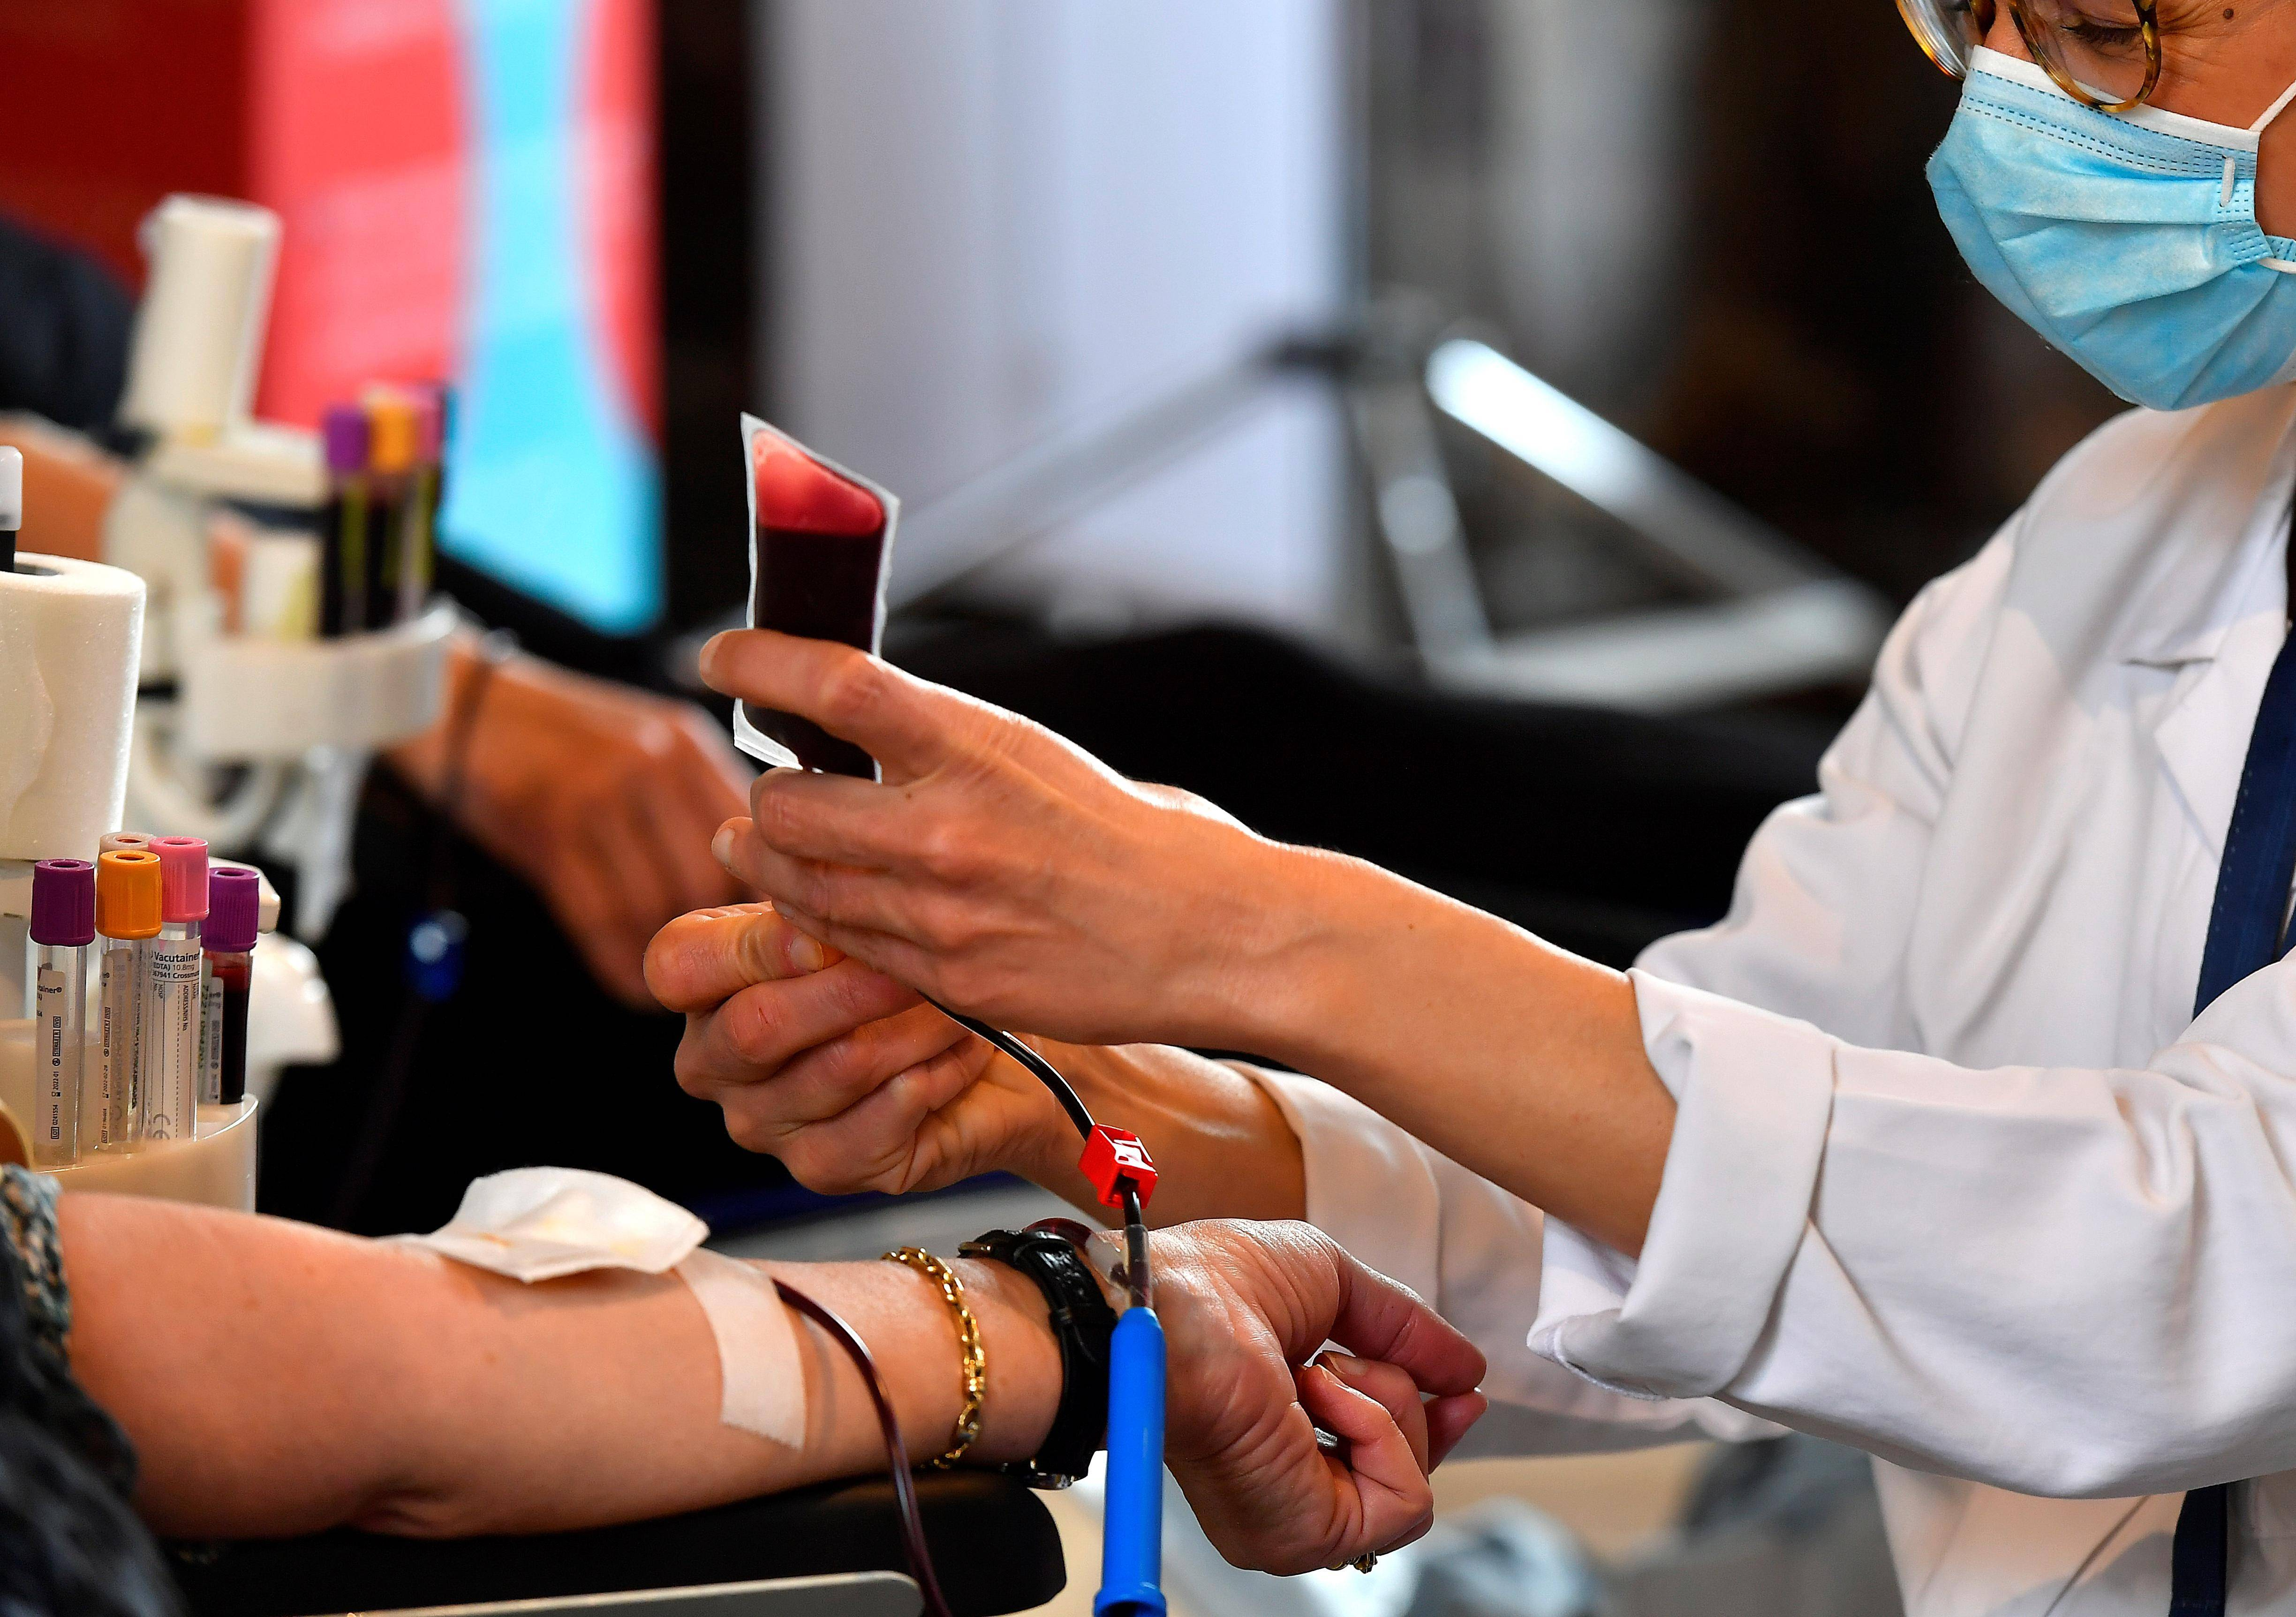 Blood donations vital during pandemic, UAE doctors say